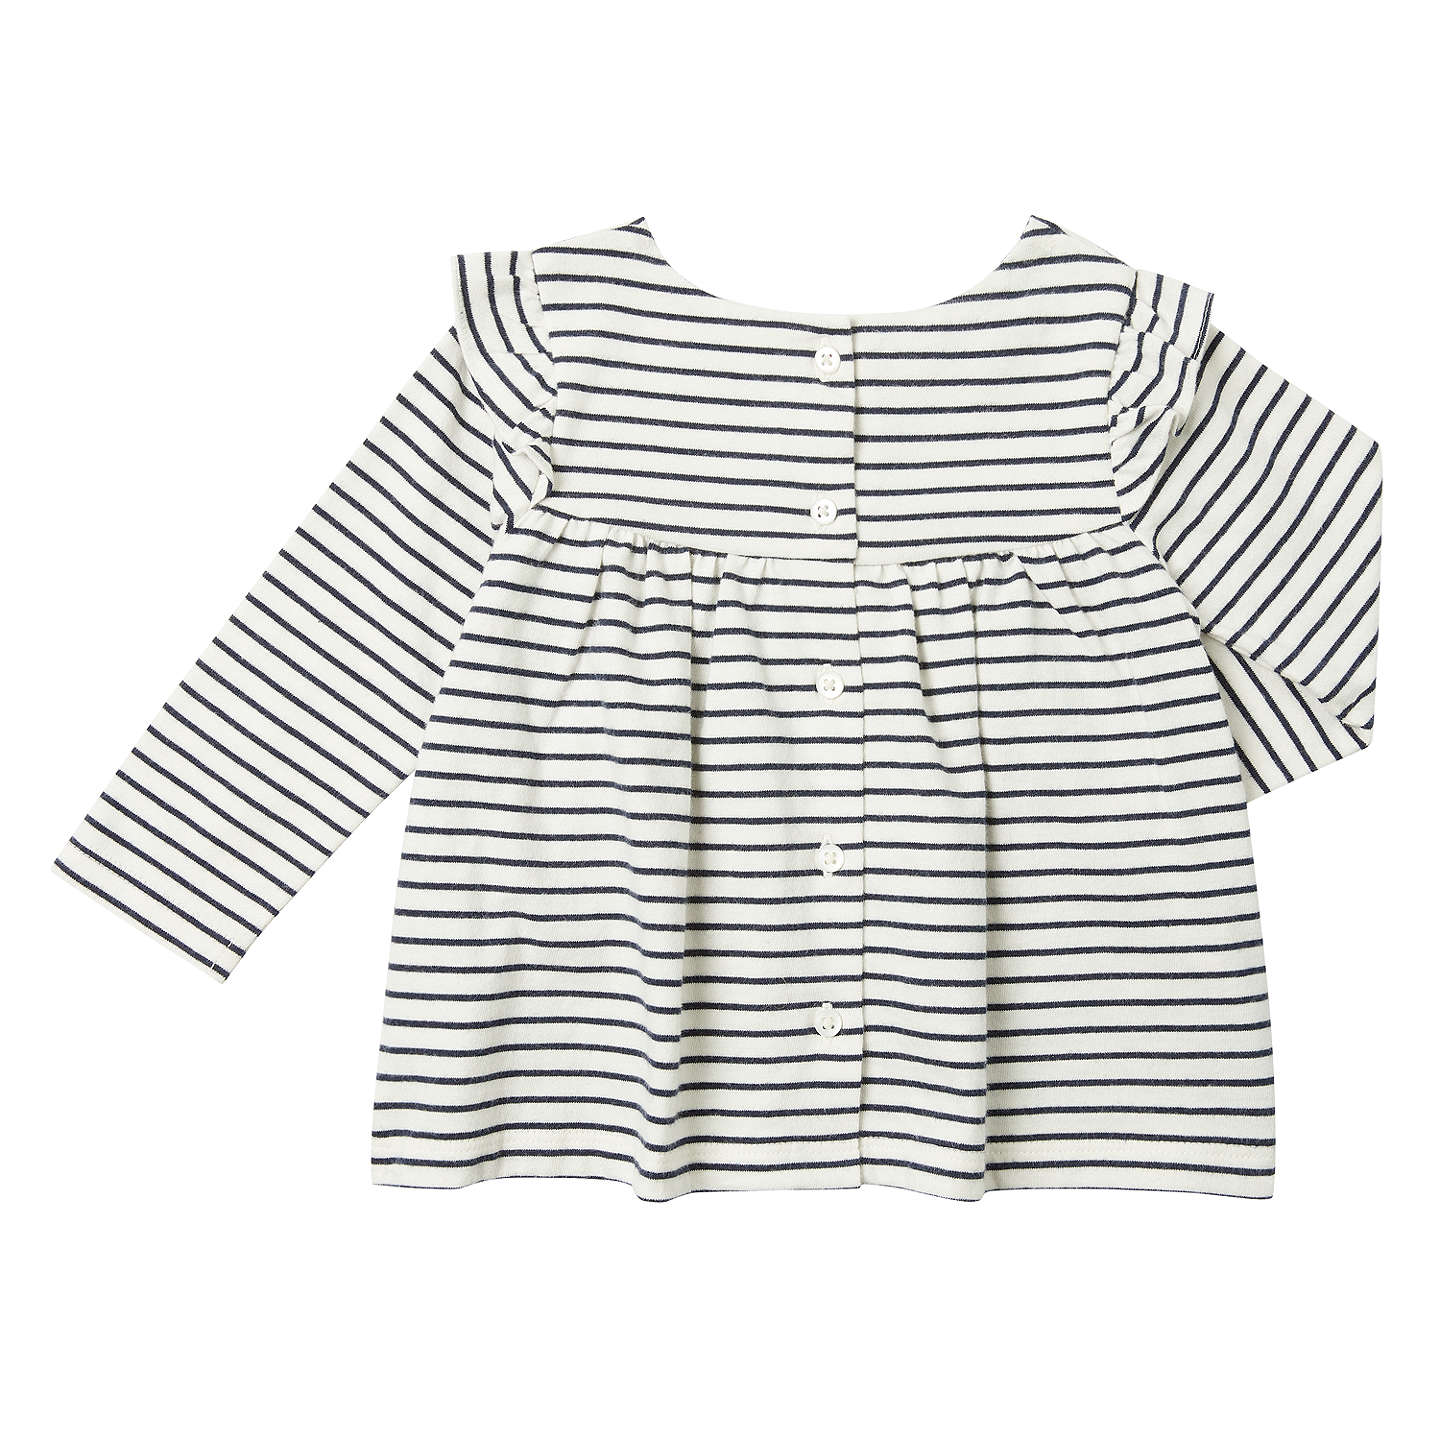 BuyJohn Lewis Baby Stripe Jersey Blouse, Cream/Navy, 0-3 months Online at johnlewis.com